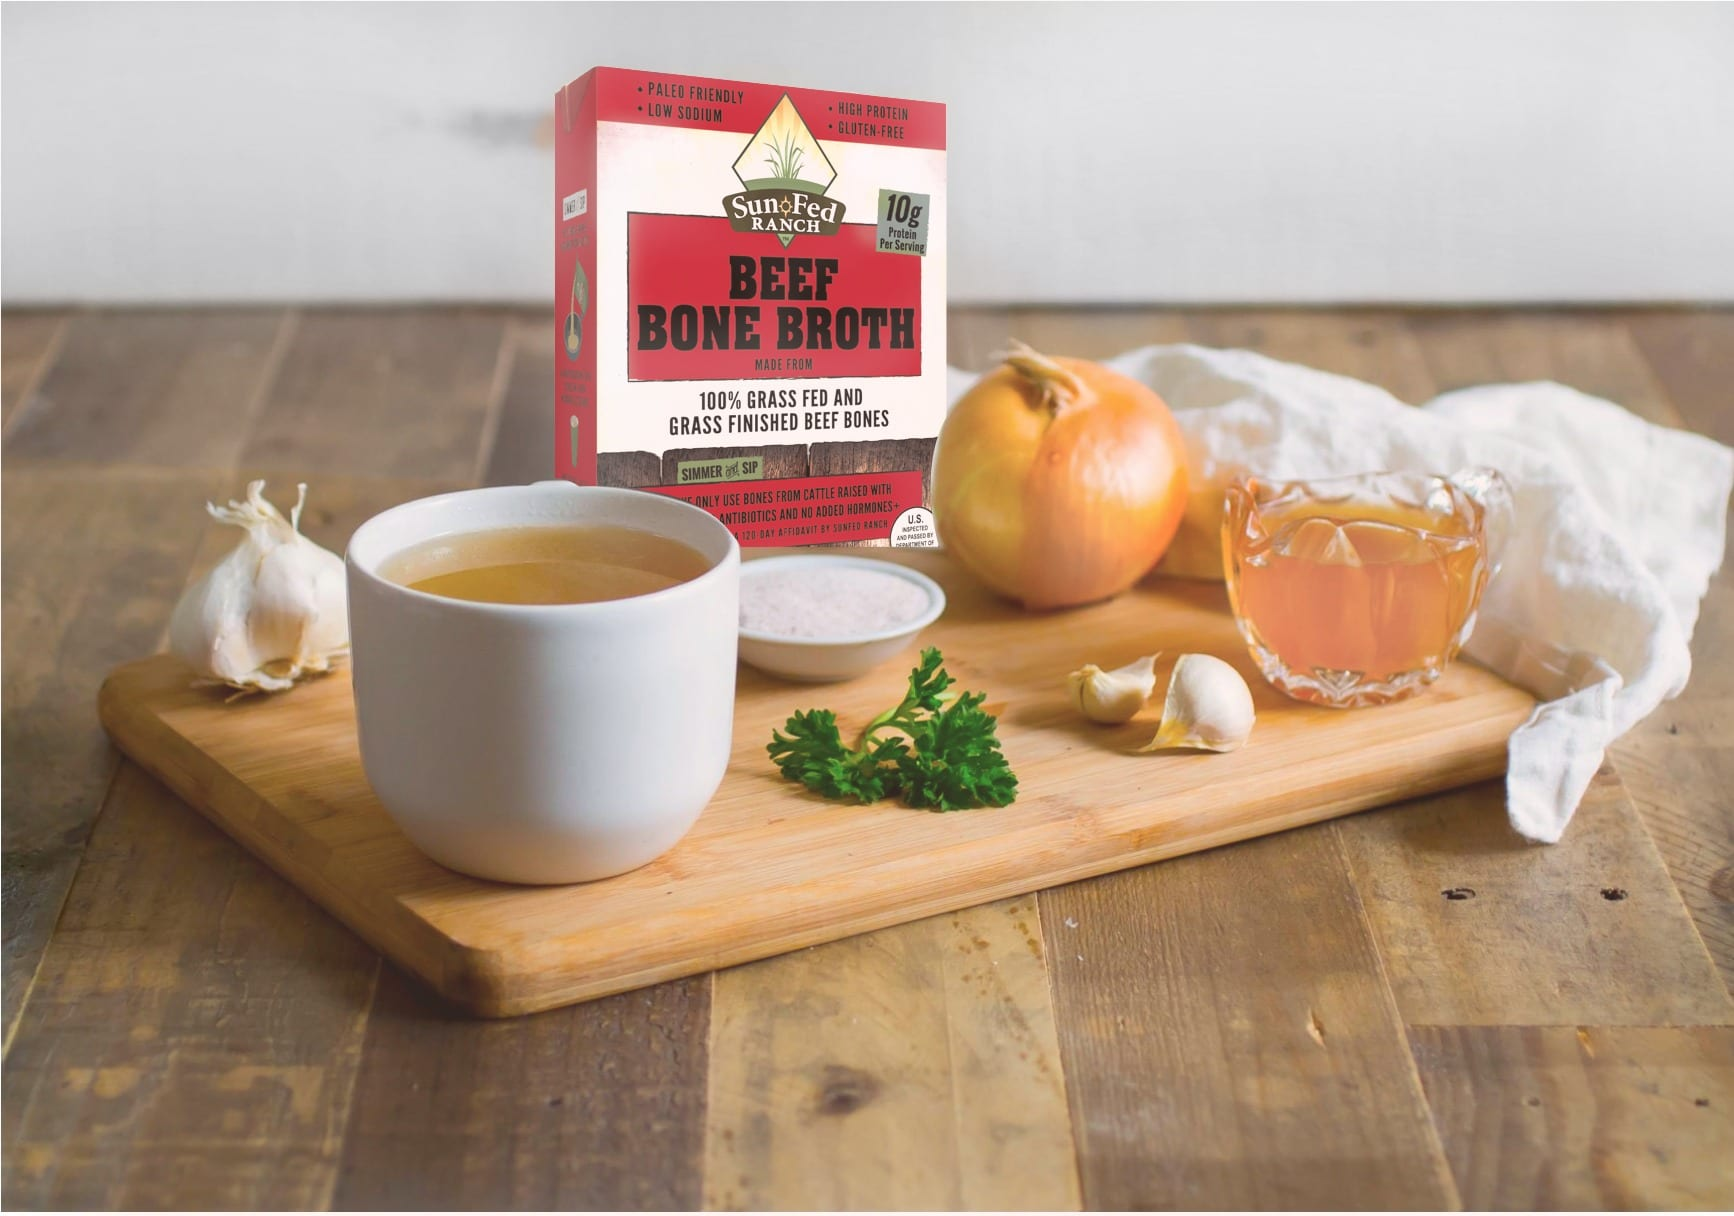 Sun Fed Ranch Beef Bone Broth